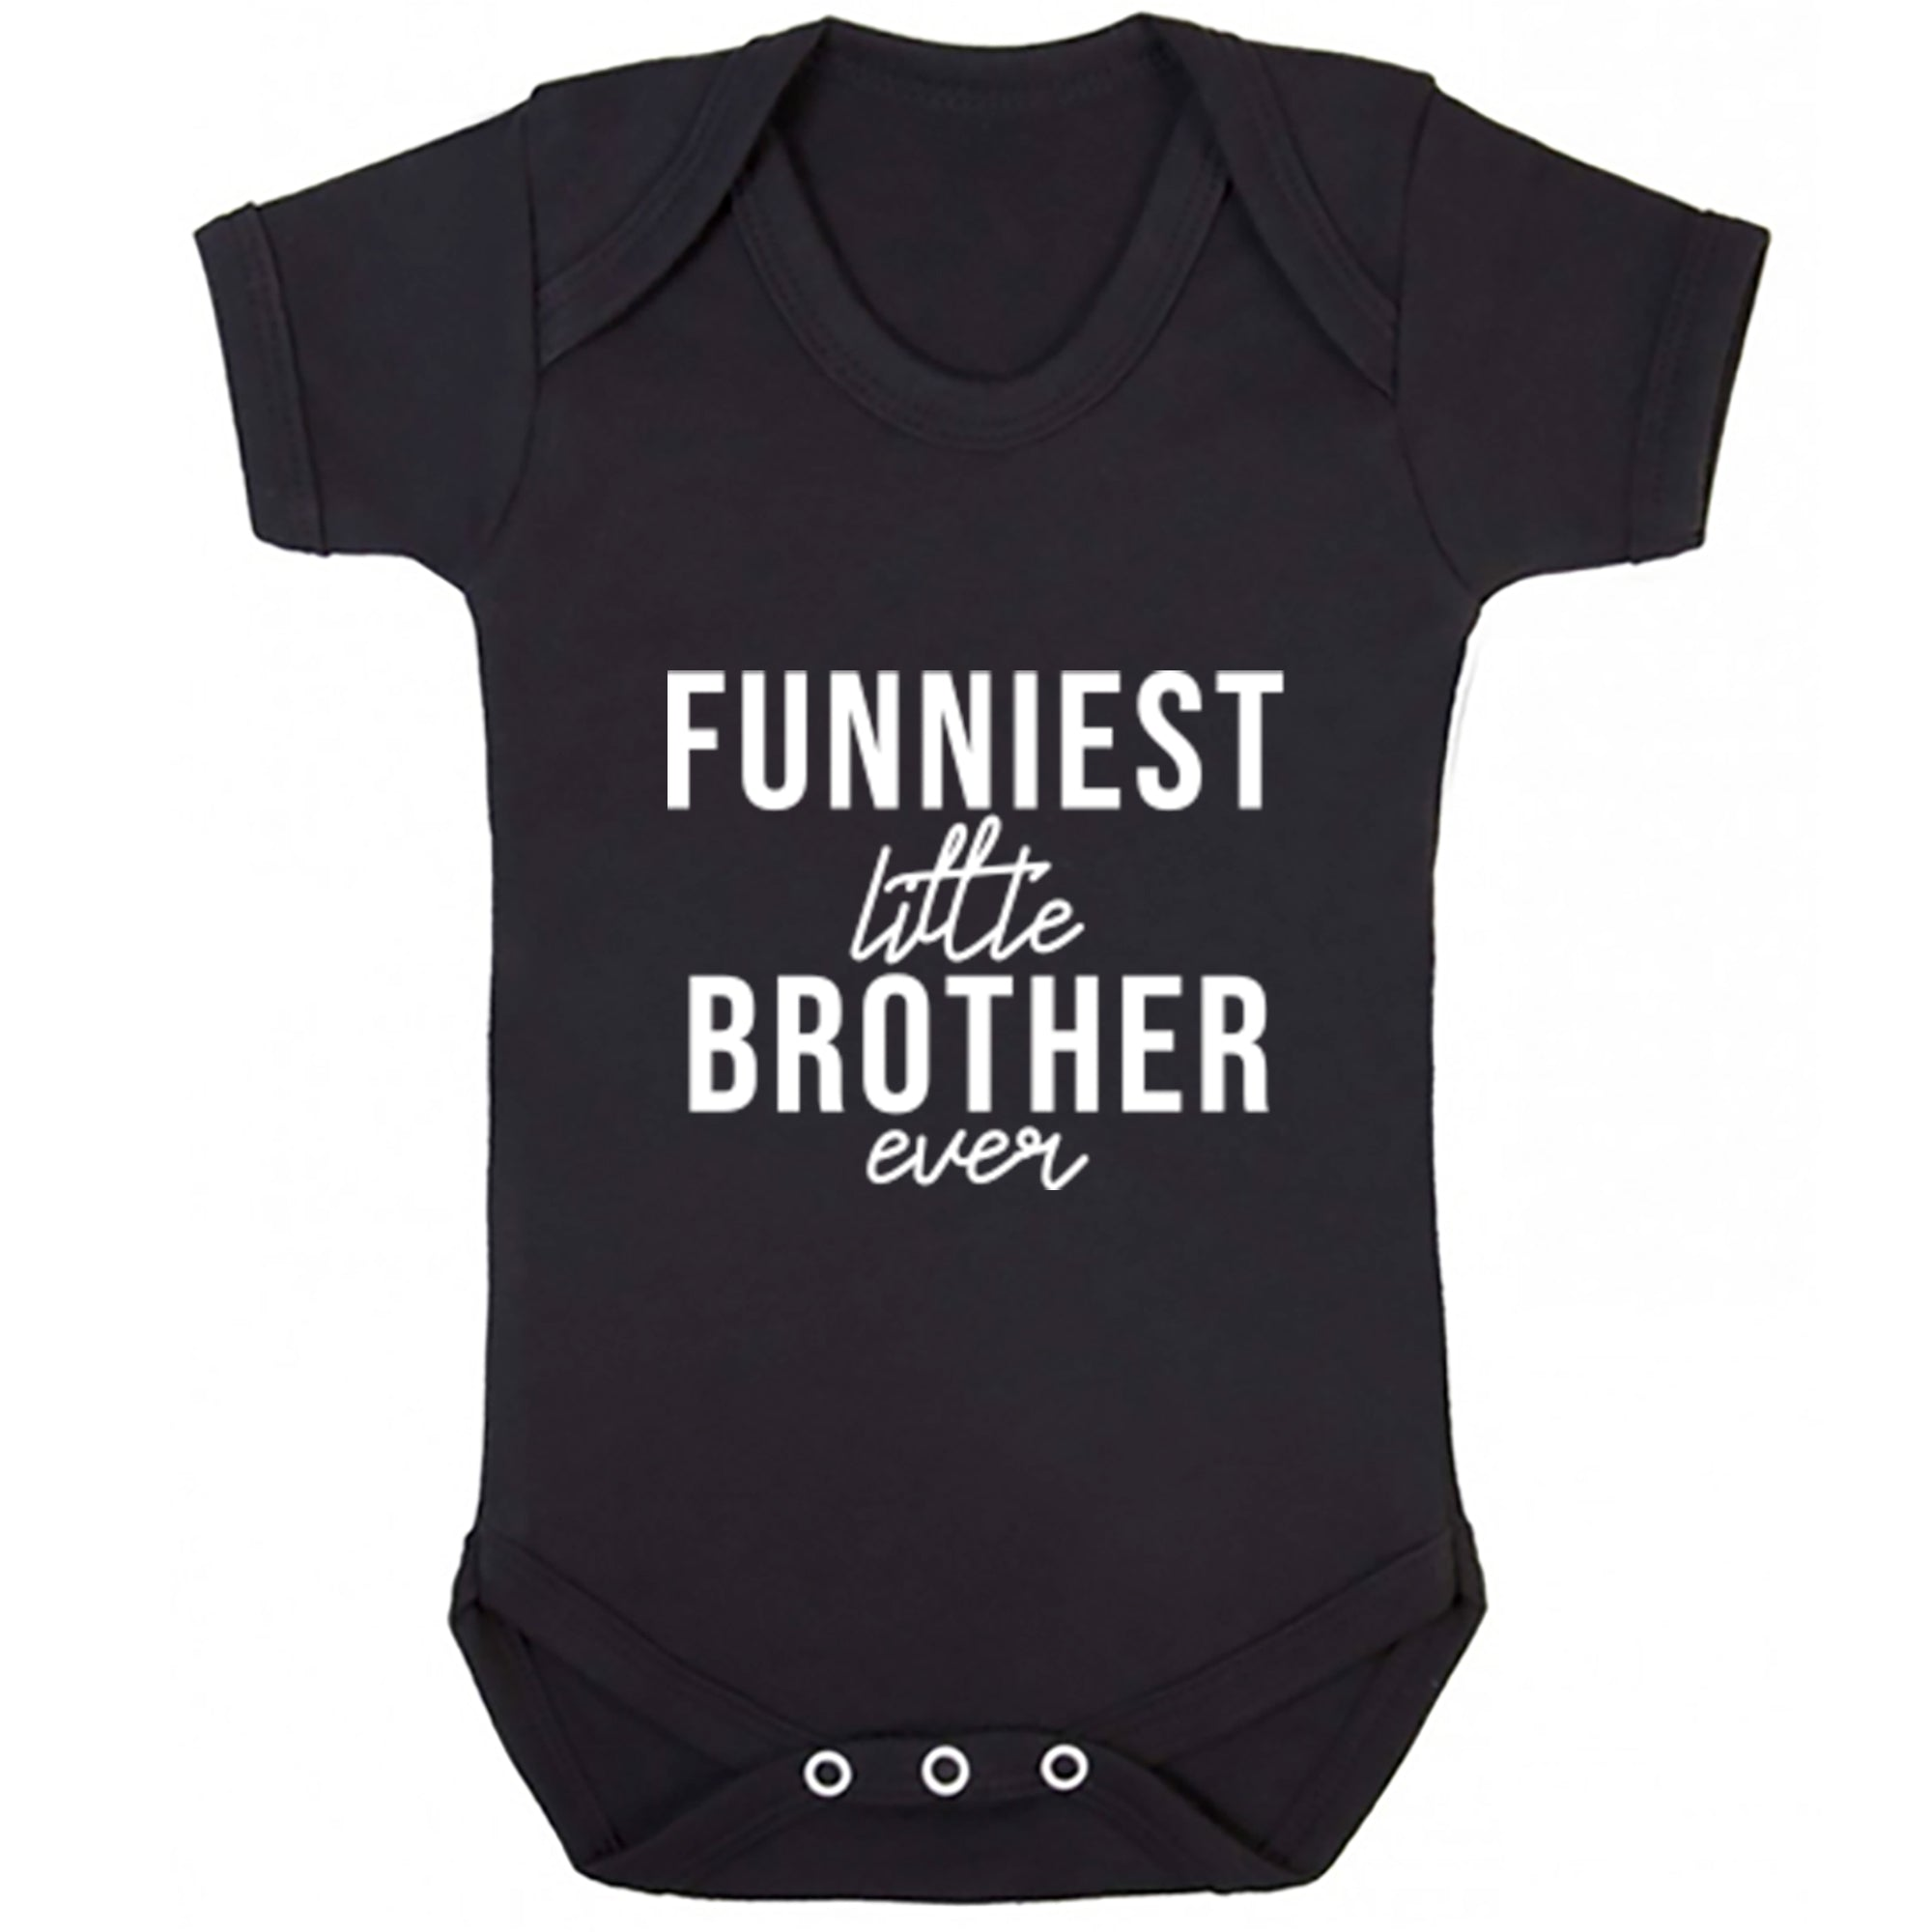 Funniest Little Brother Ever Baby Vest S0522 - Illustrated Identity Ltd.